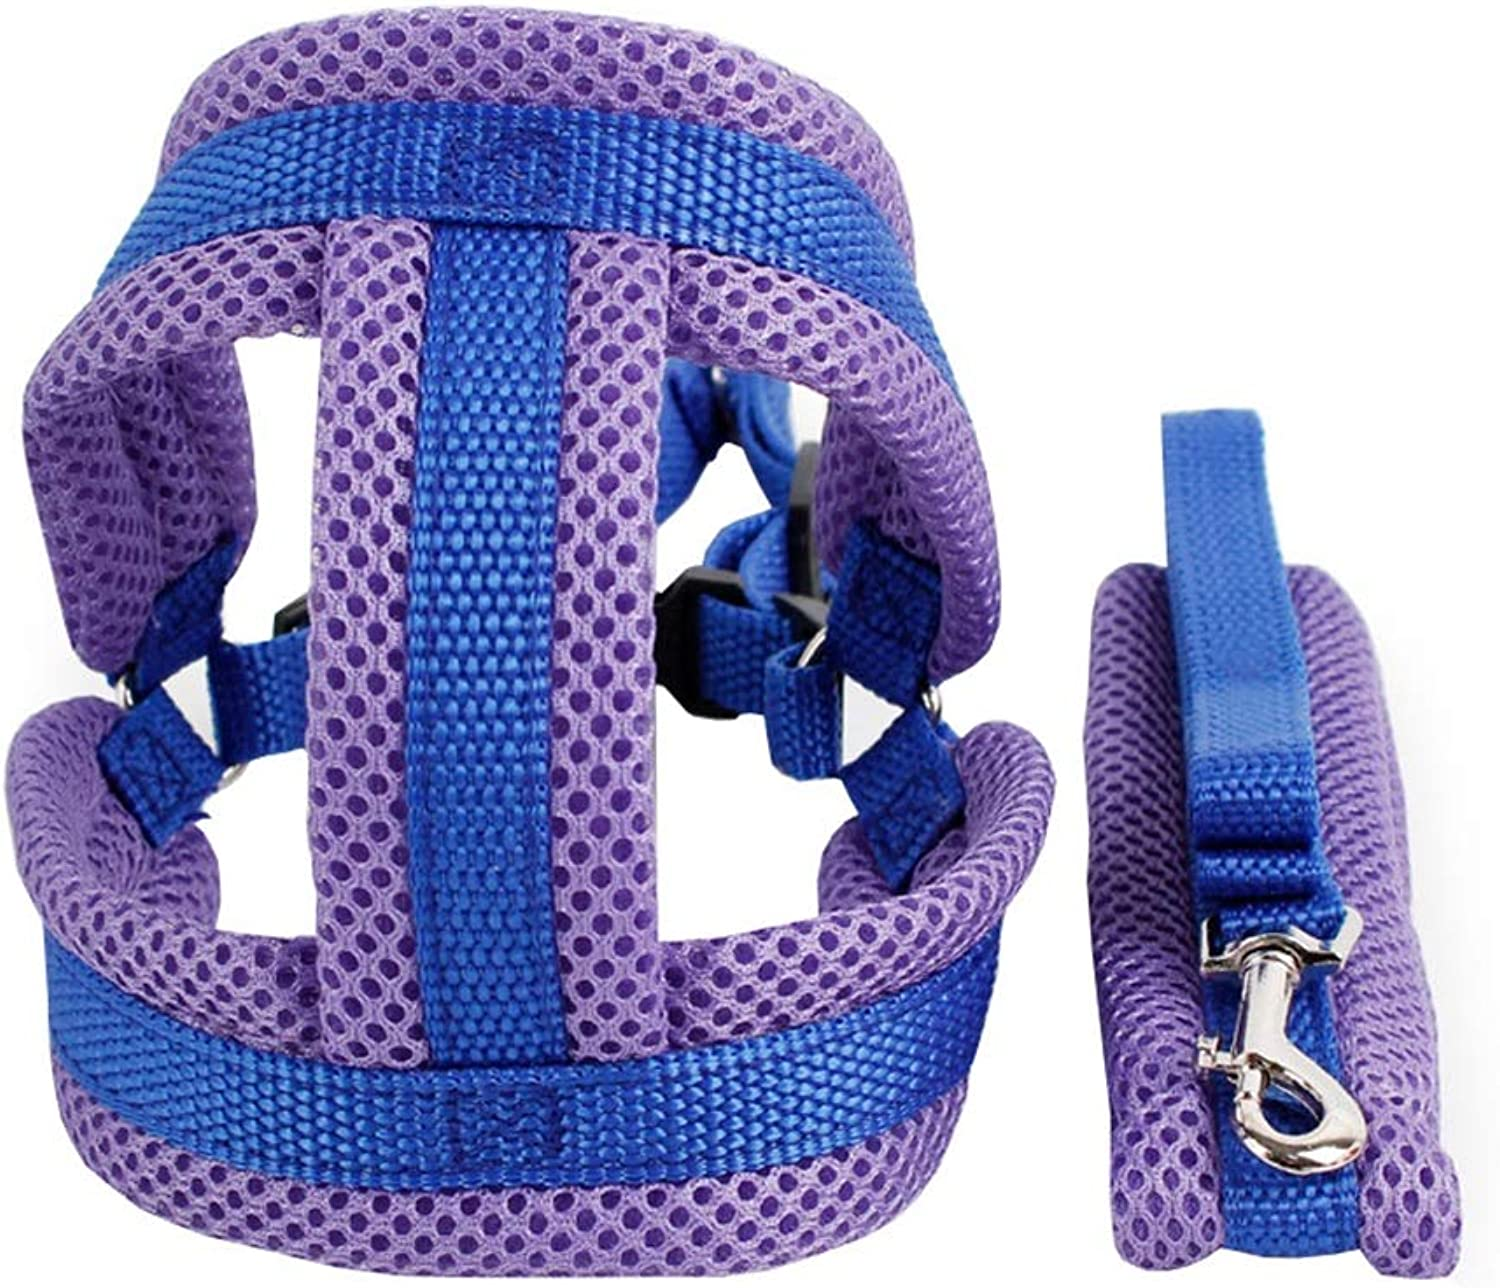 Dog Vest Harness, Chest Straps, Traction Leash, Teddy Chain for Small Clothes Outdoor Training Walking Running Rope Cat Safety Buffer Harness (color   bluee, Size   M)